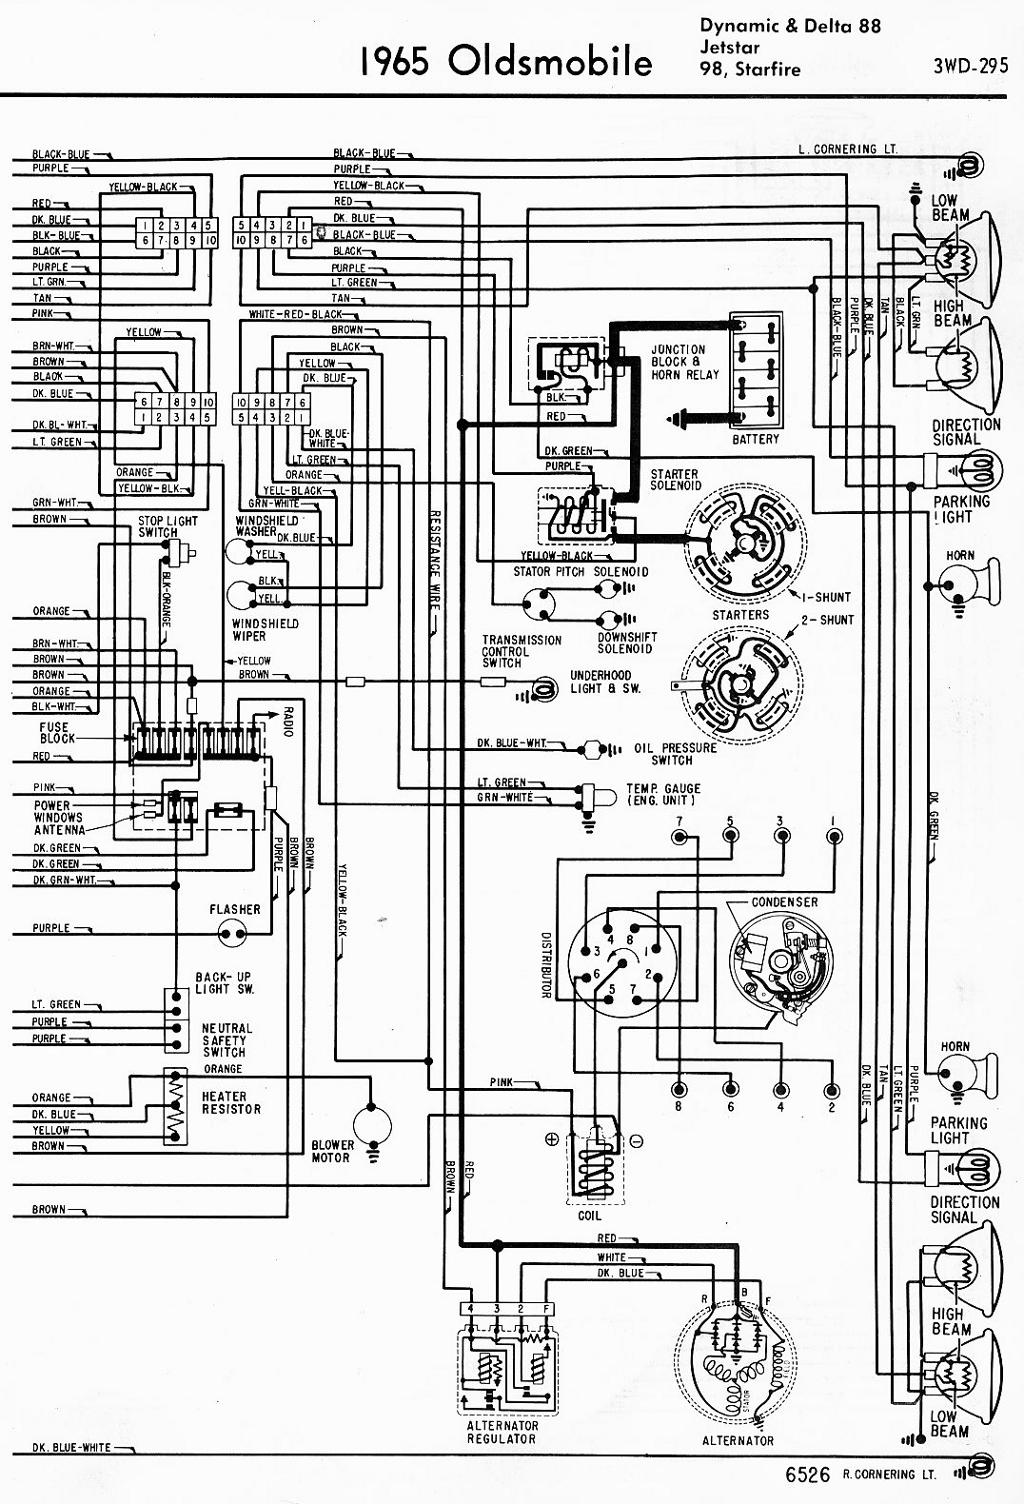 hight resolution of nissan tiida air con wiring diagram wiring schematic 1987 nissan pickup wiring diagram nissan tiida a c